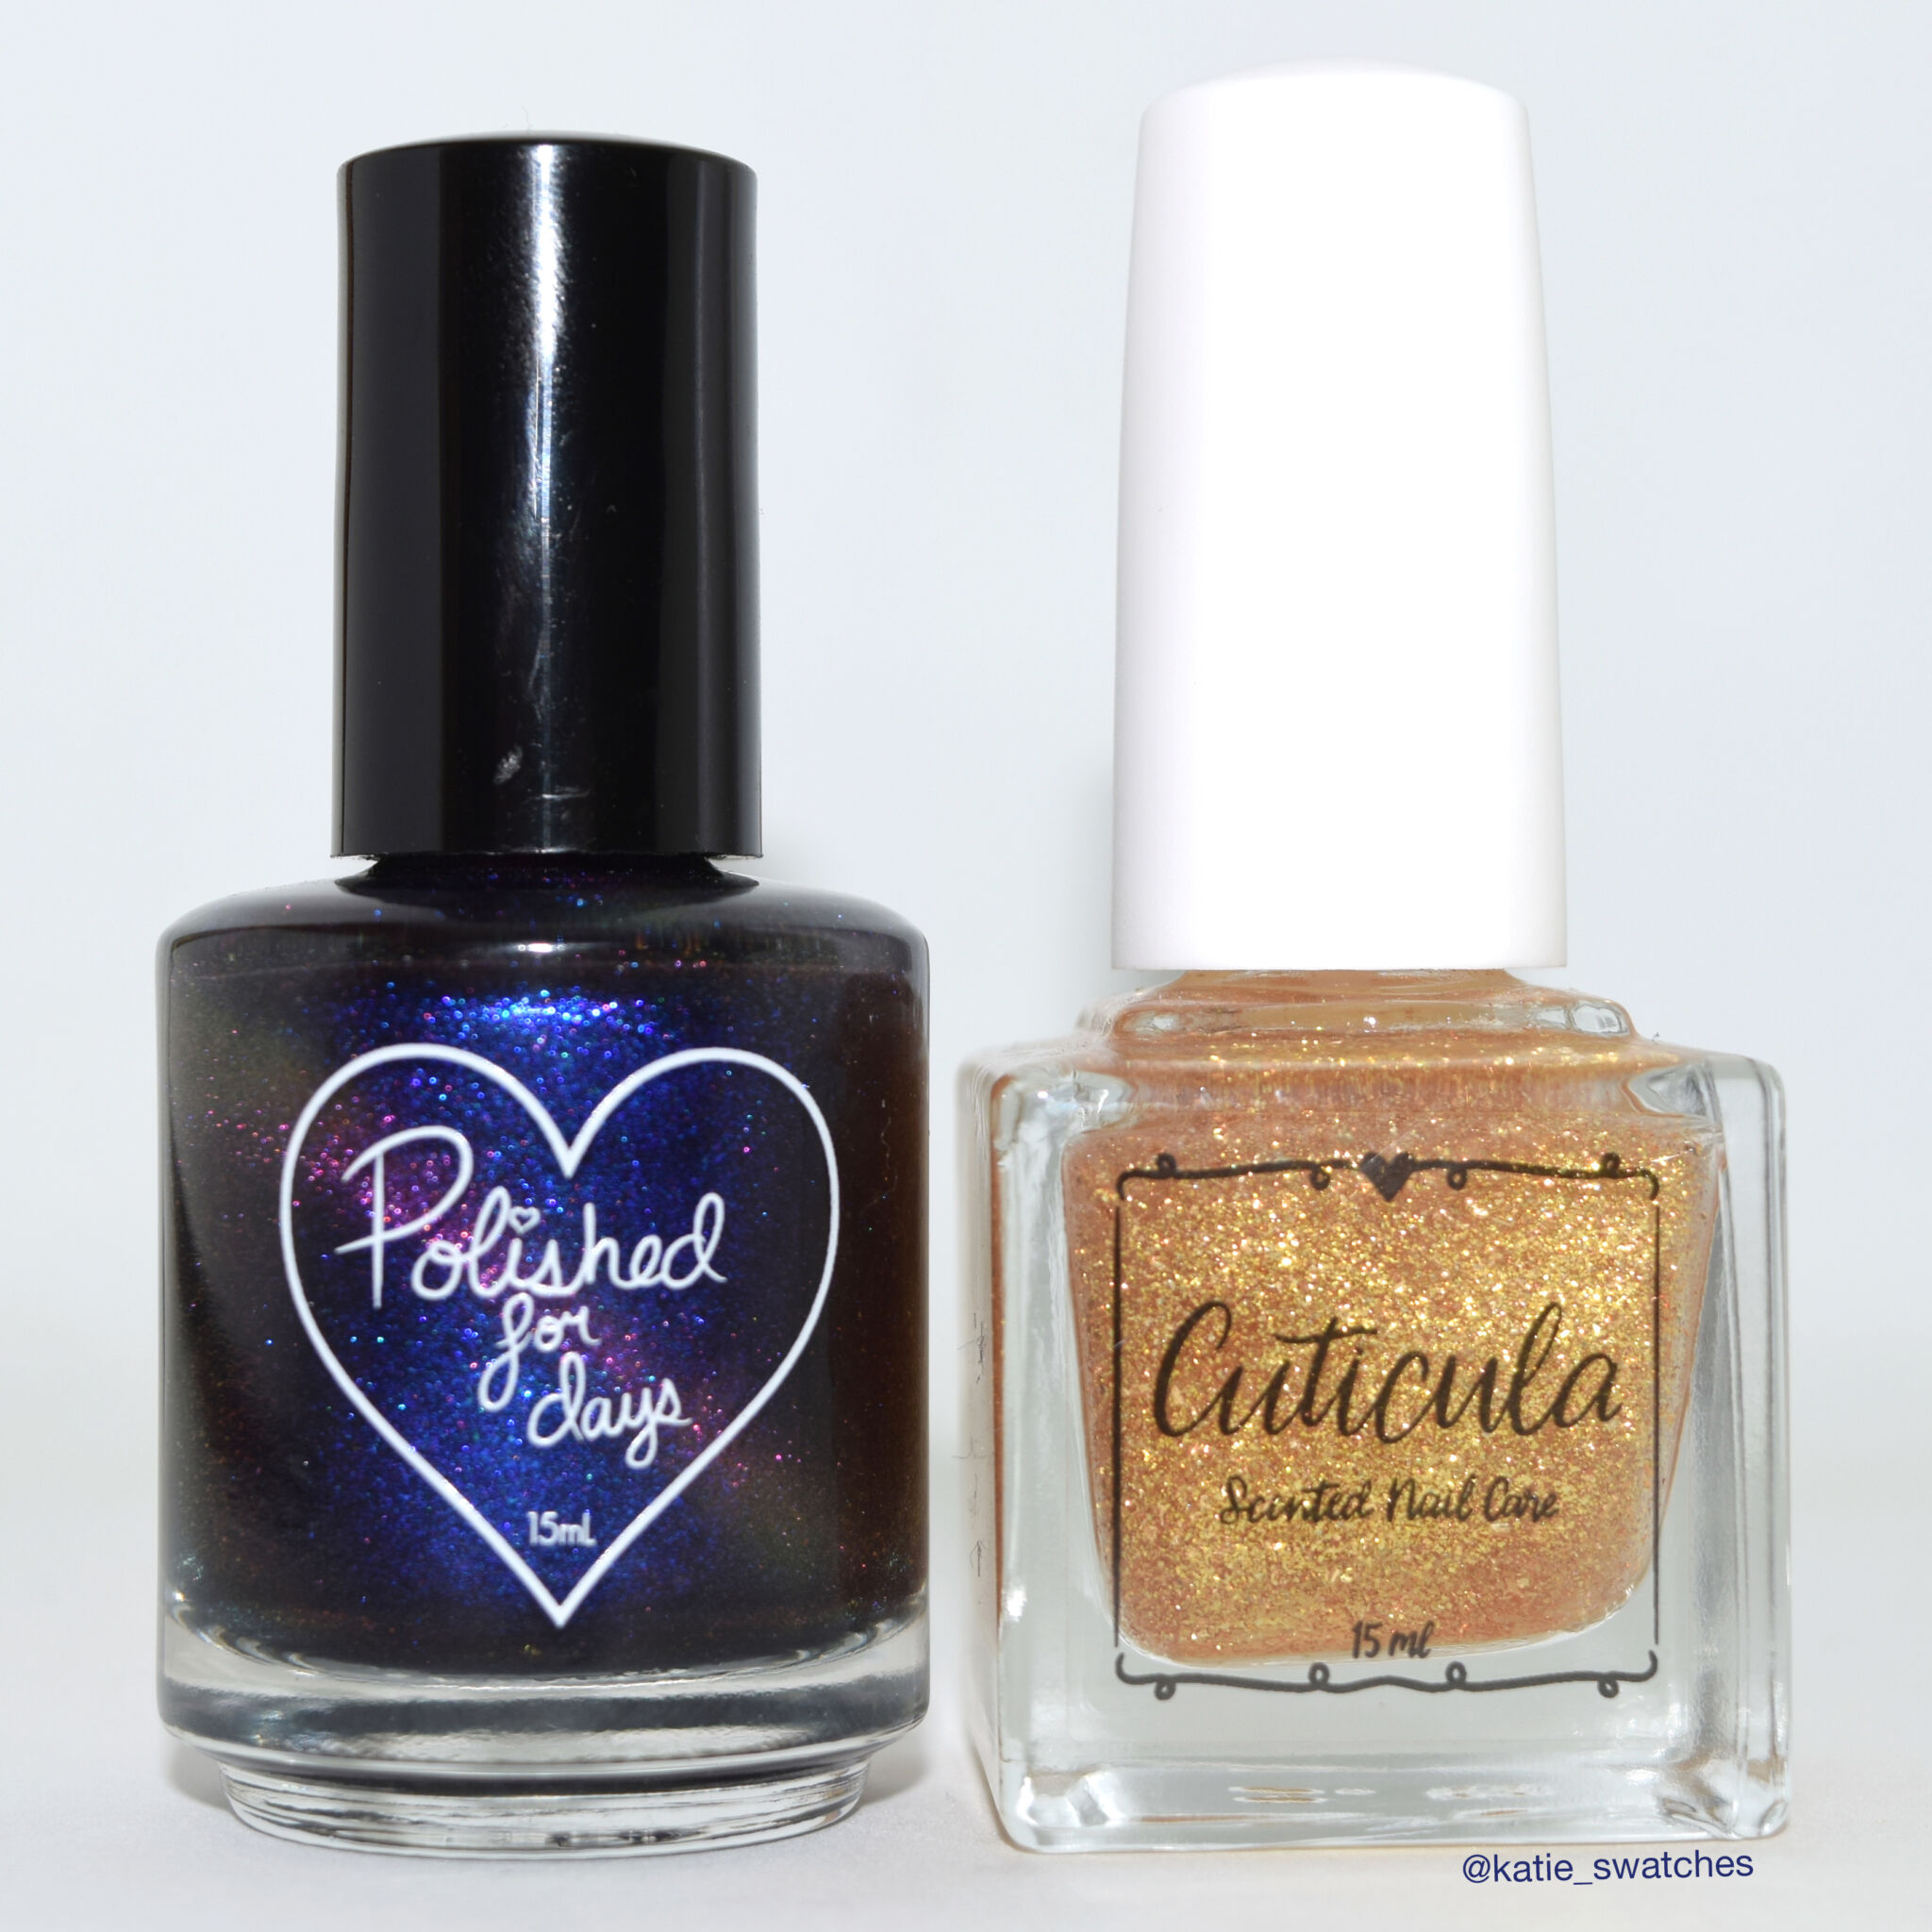 Polished for Days & Cuticula Duos and Pairs set Polish Pickup